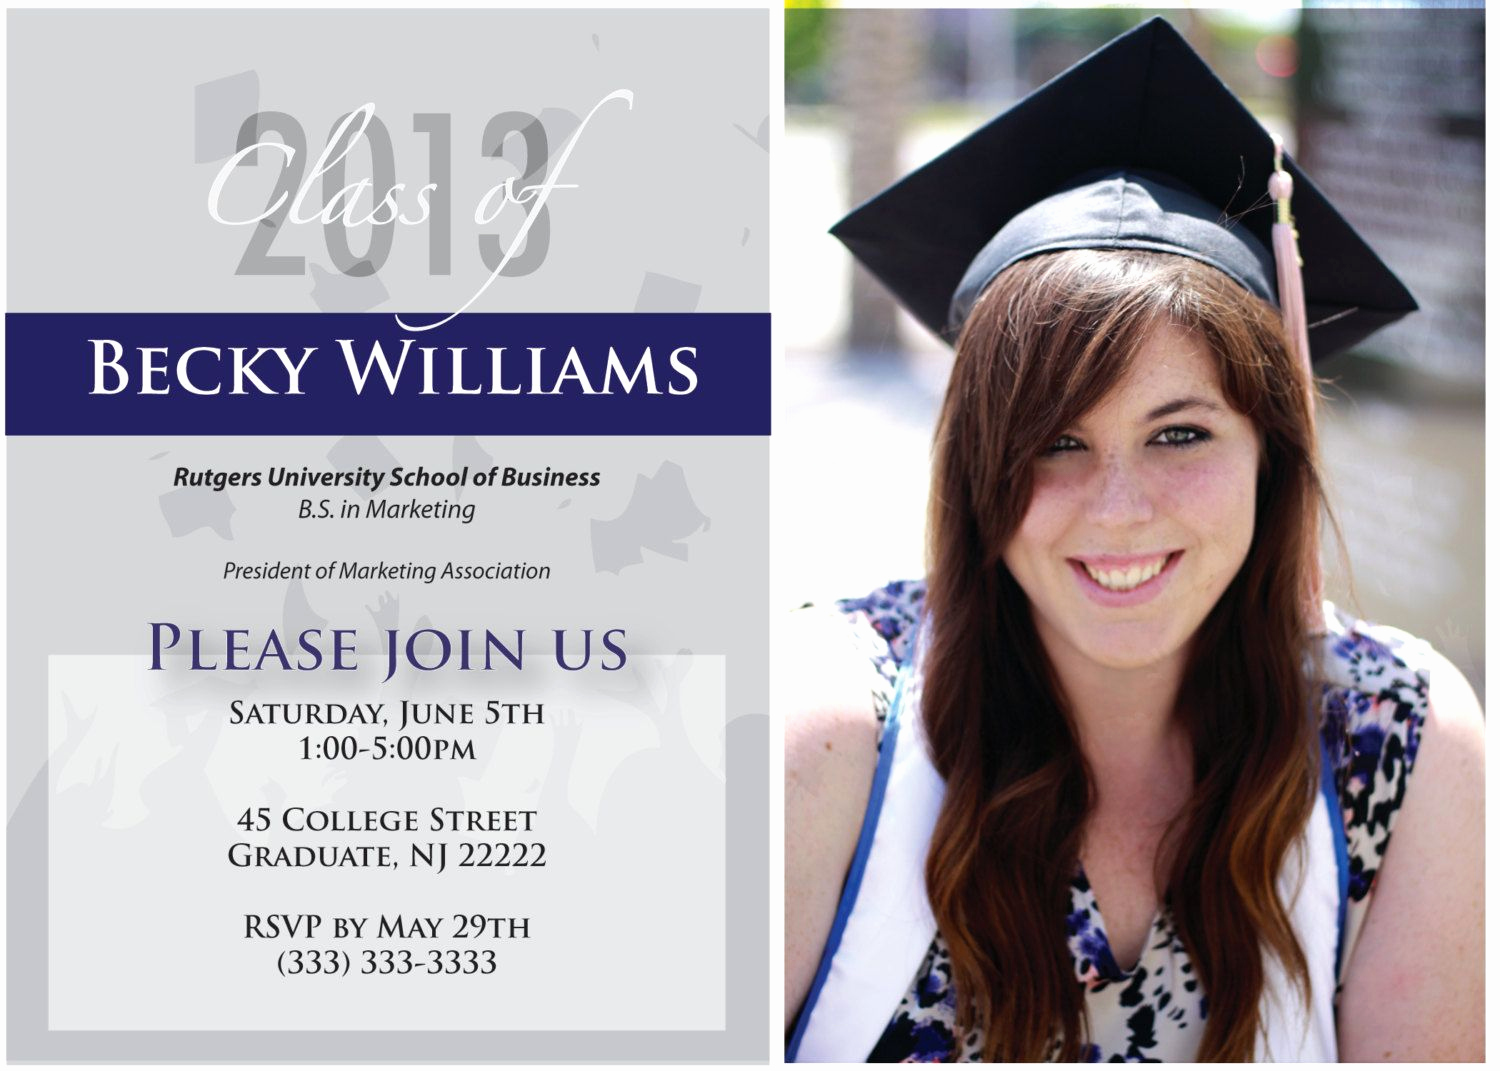 High School Graduation Invitation Wording Inspirational Graduation Invitations with Quotes Google Search